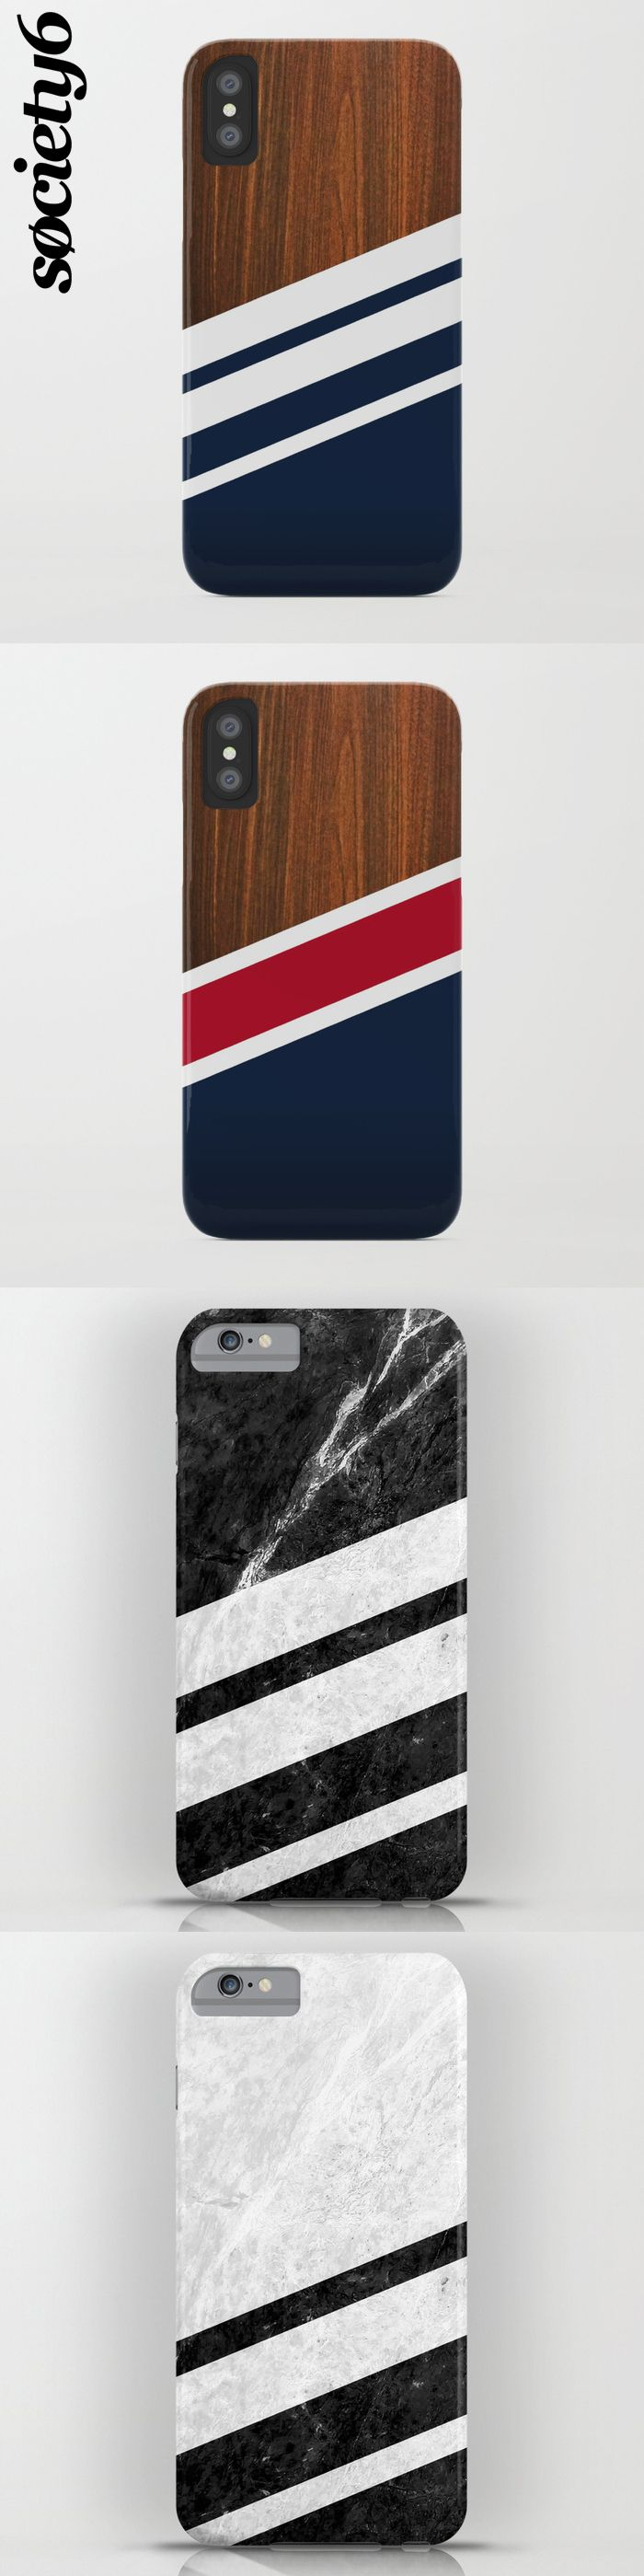 A collection of cool, striped designed cases for iPhone and Samsung #iphonecase #iphone #samsung #case #stripe #striped #materials #wood #marble #navy #newengland